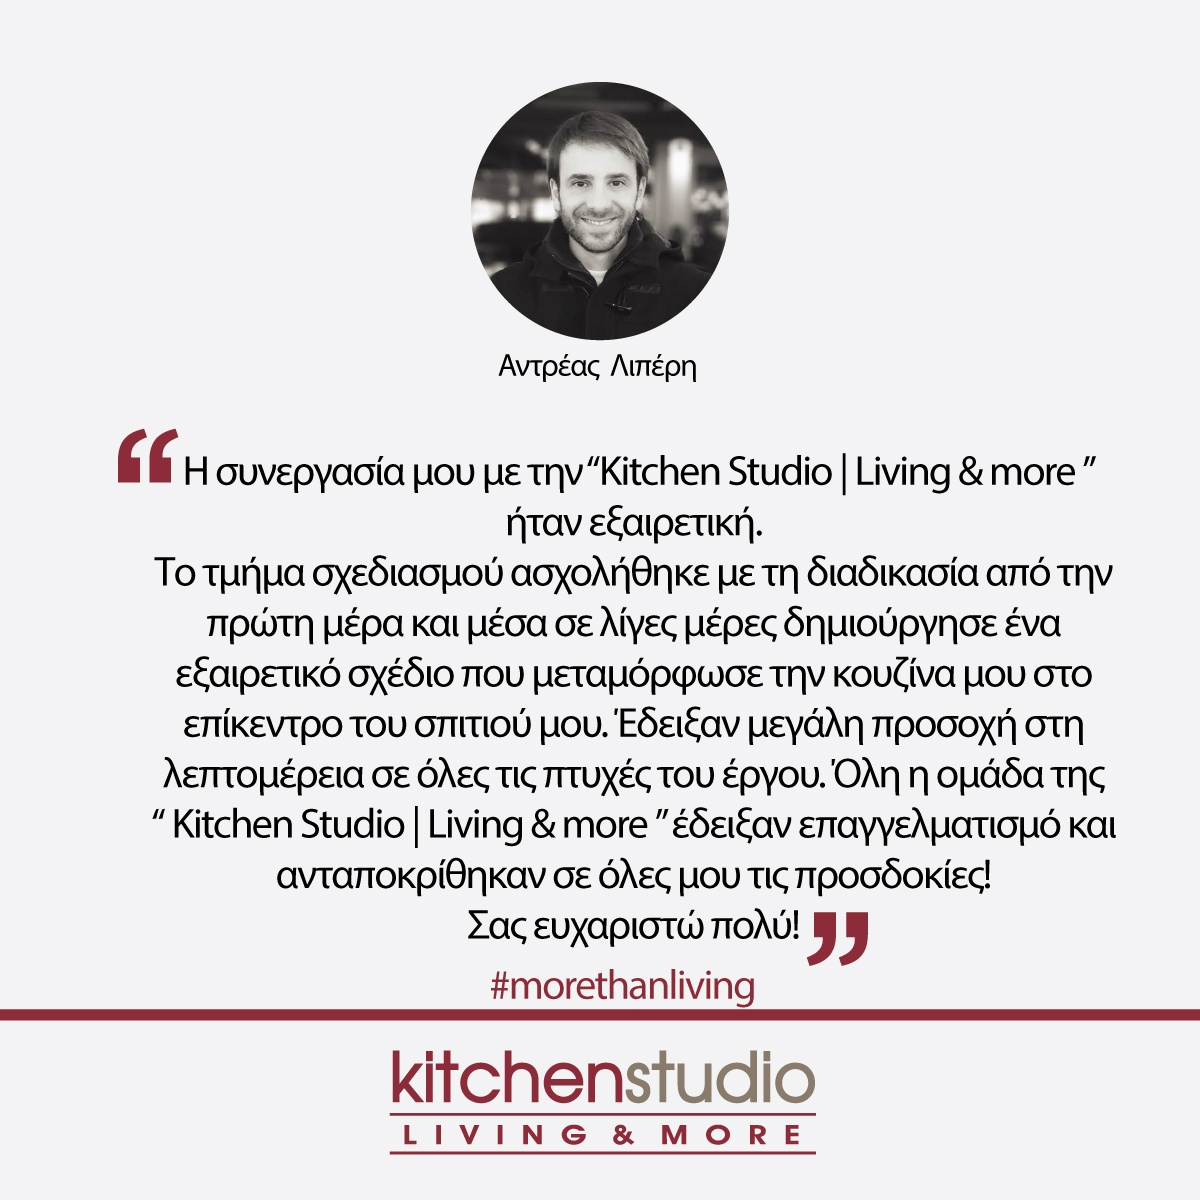 kitchen renovation cyprus larnaca kitchen studio living and more euromobil zalf bedroom solutions reviews testimonial antreas liperis